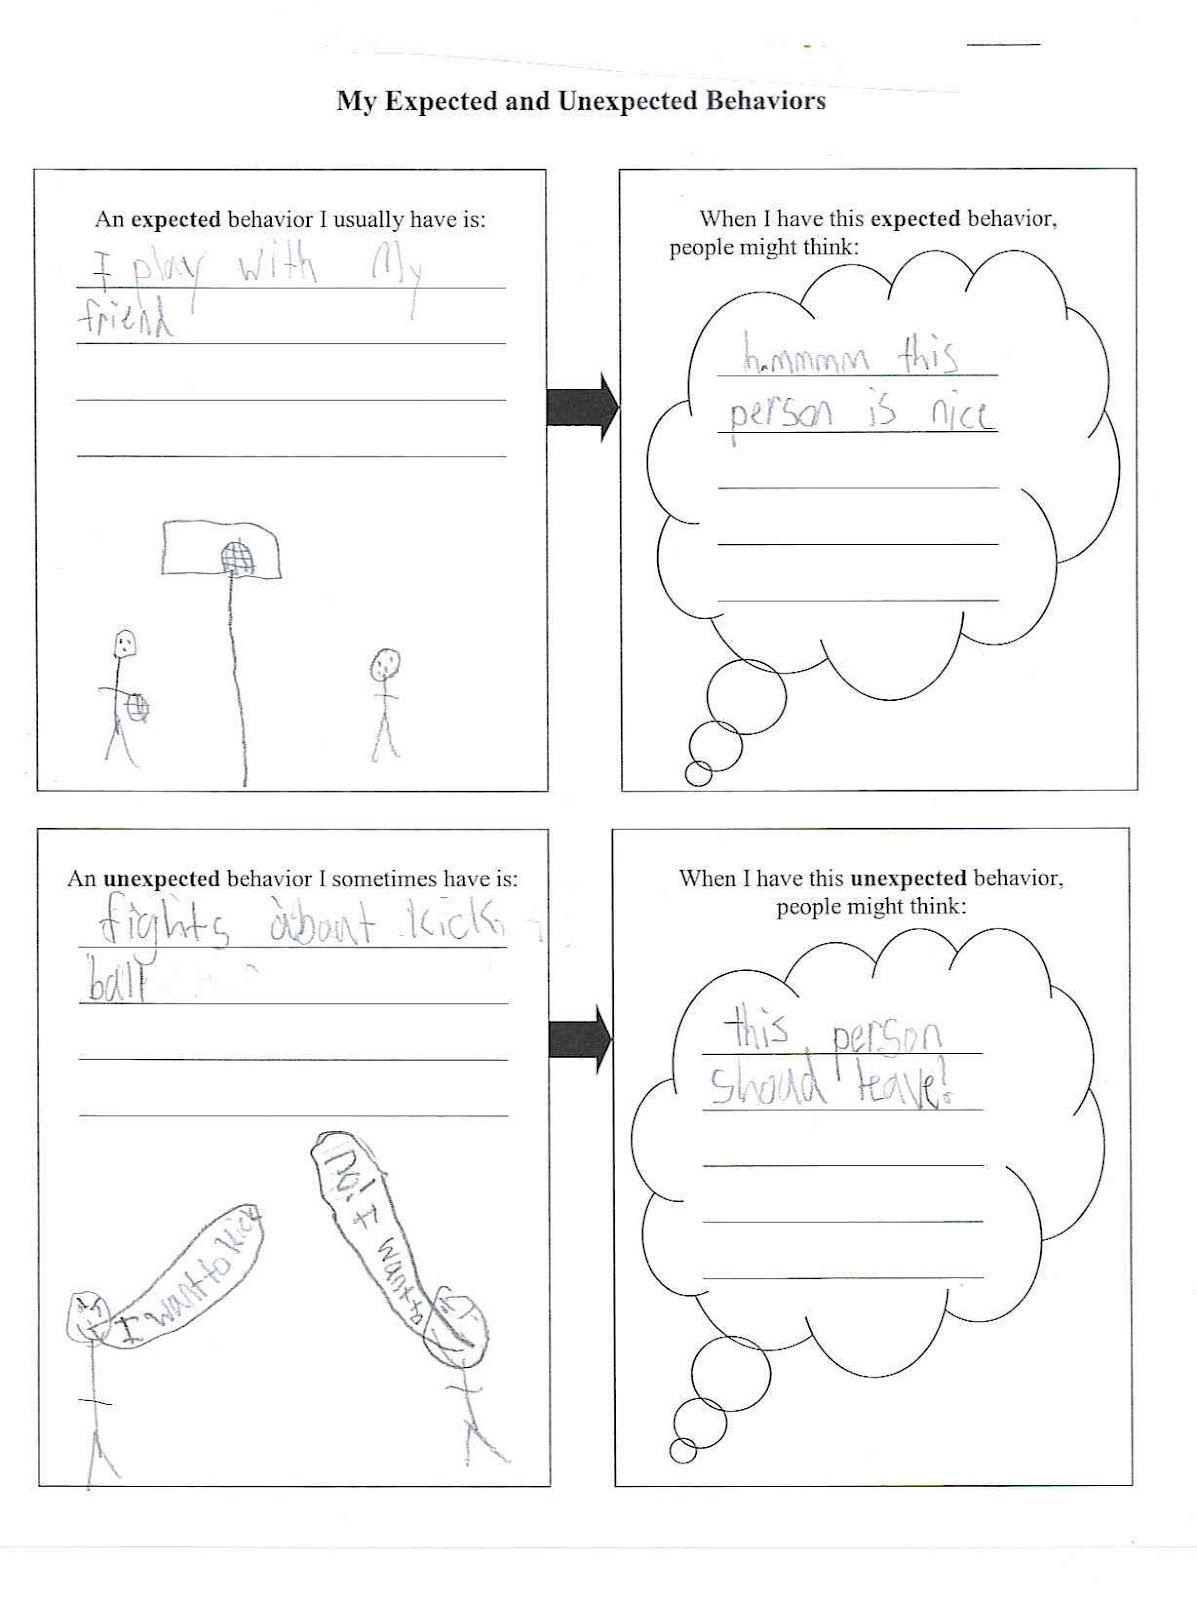 Expected Unexpected Behavior Worksheet These Words Are Key To Kids With Autism Understanding